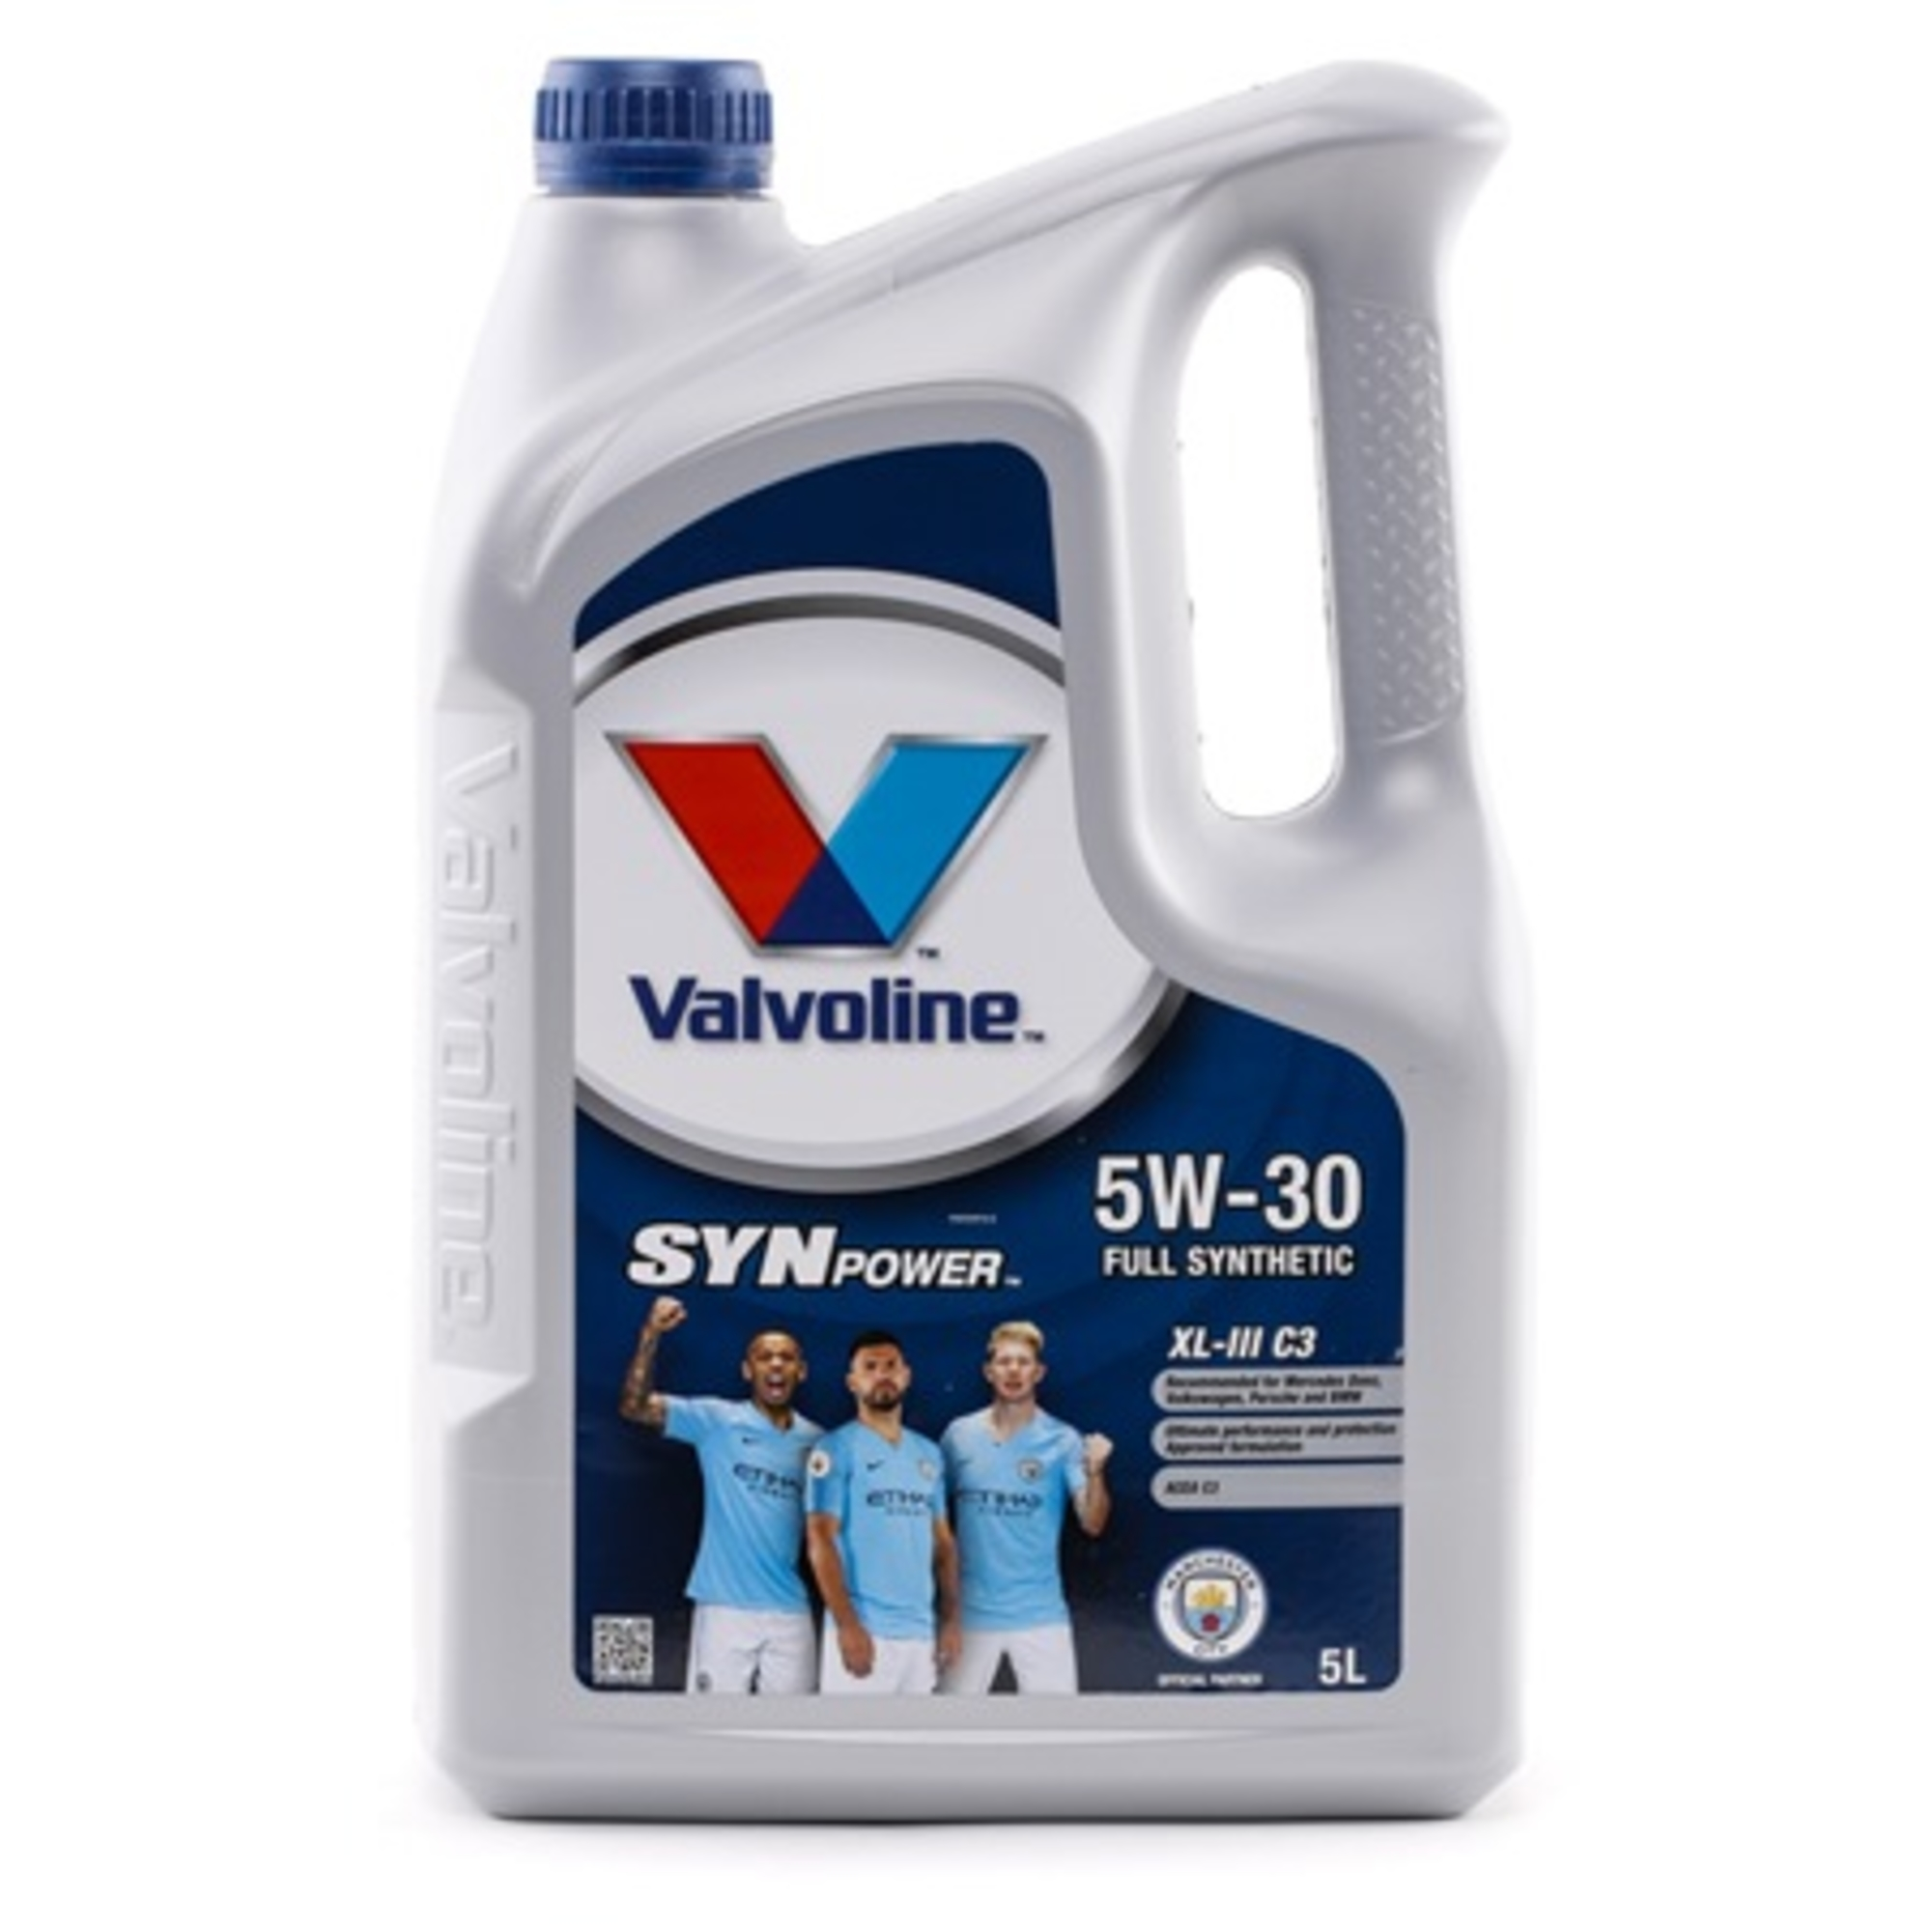 valvoline synpower full synthetic xl-iii c3 sae 5w30 5l